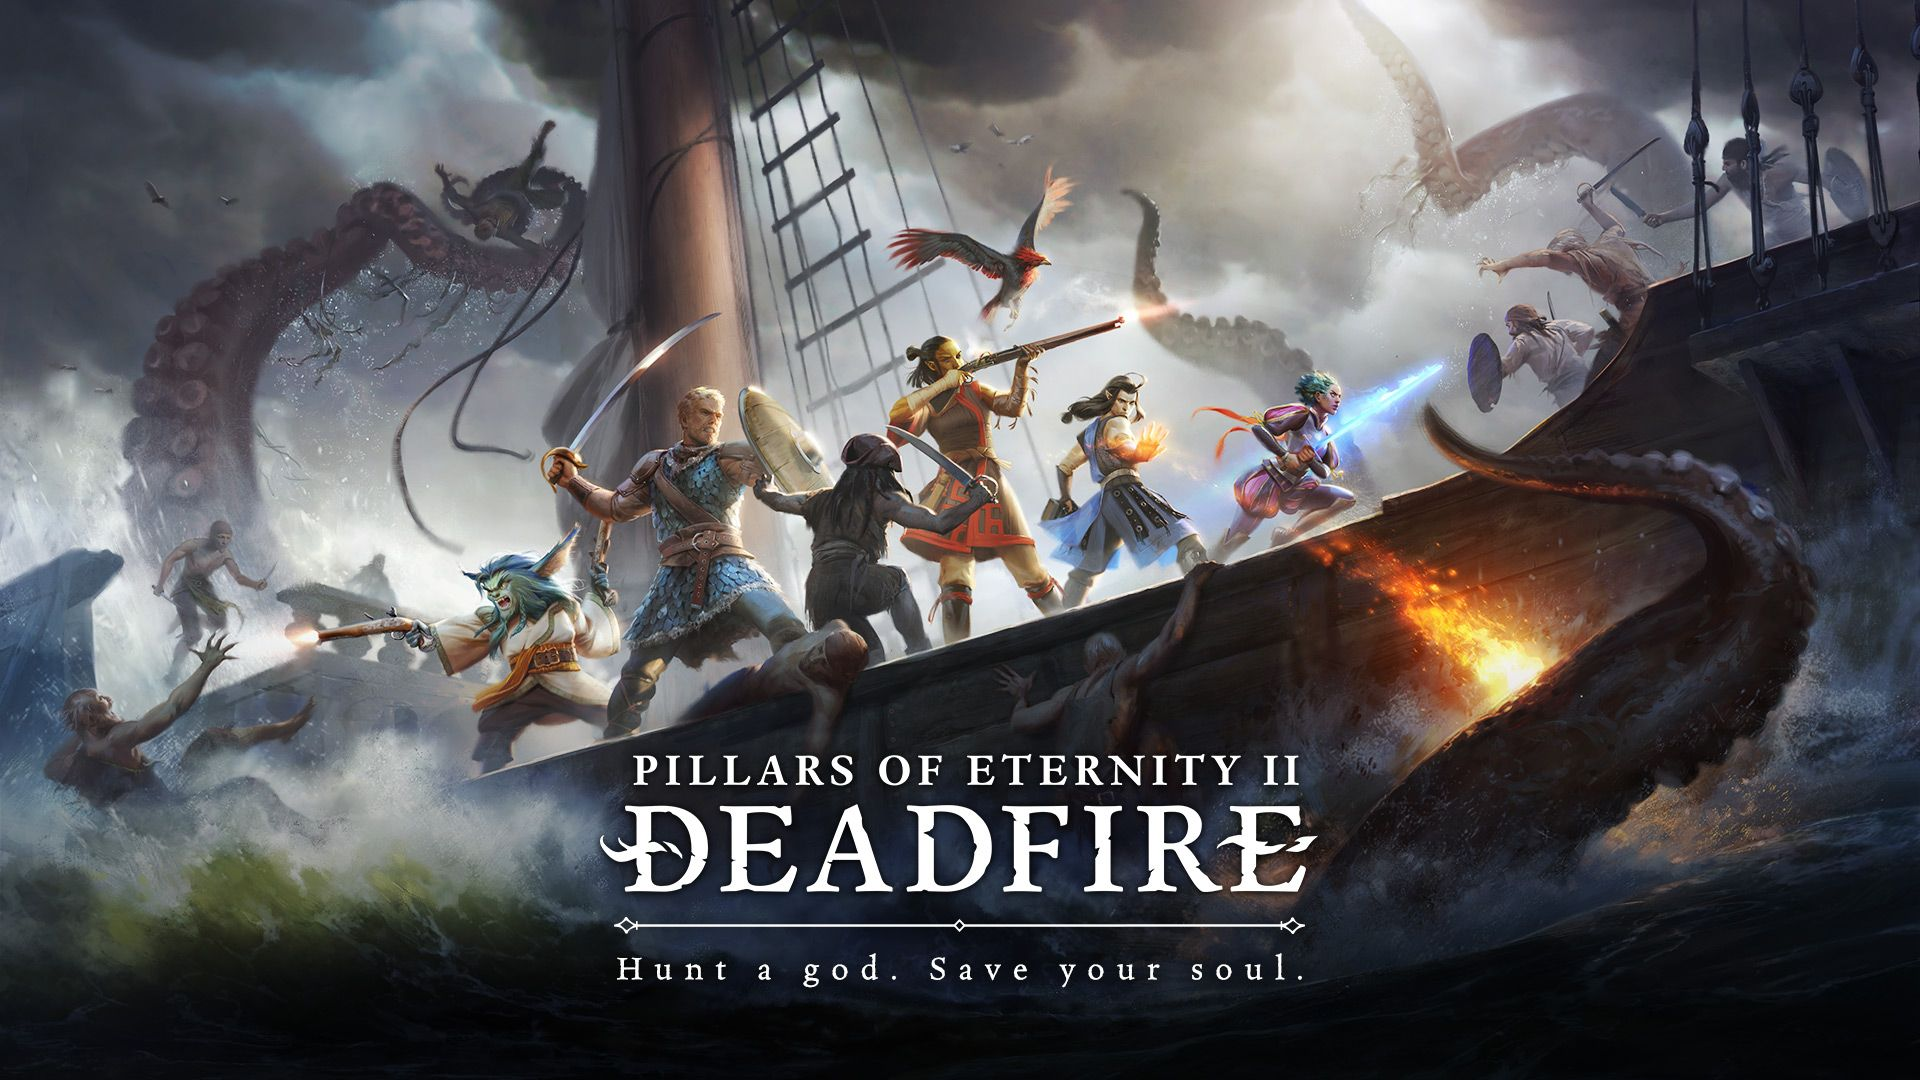 Pillars of Eternity 2: Deadfire tek u svibnju